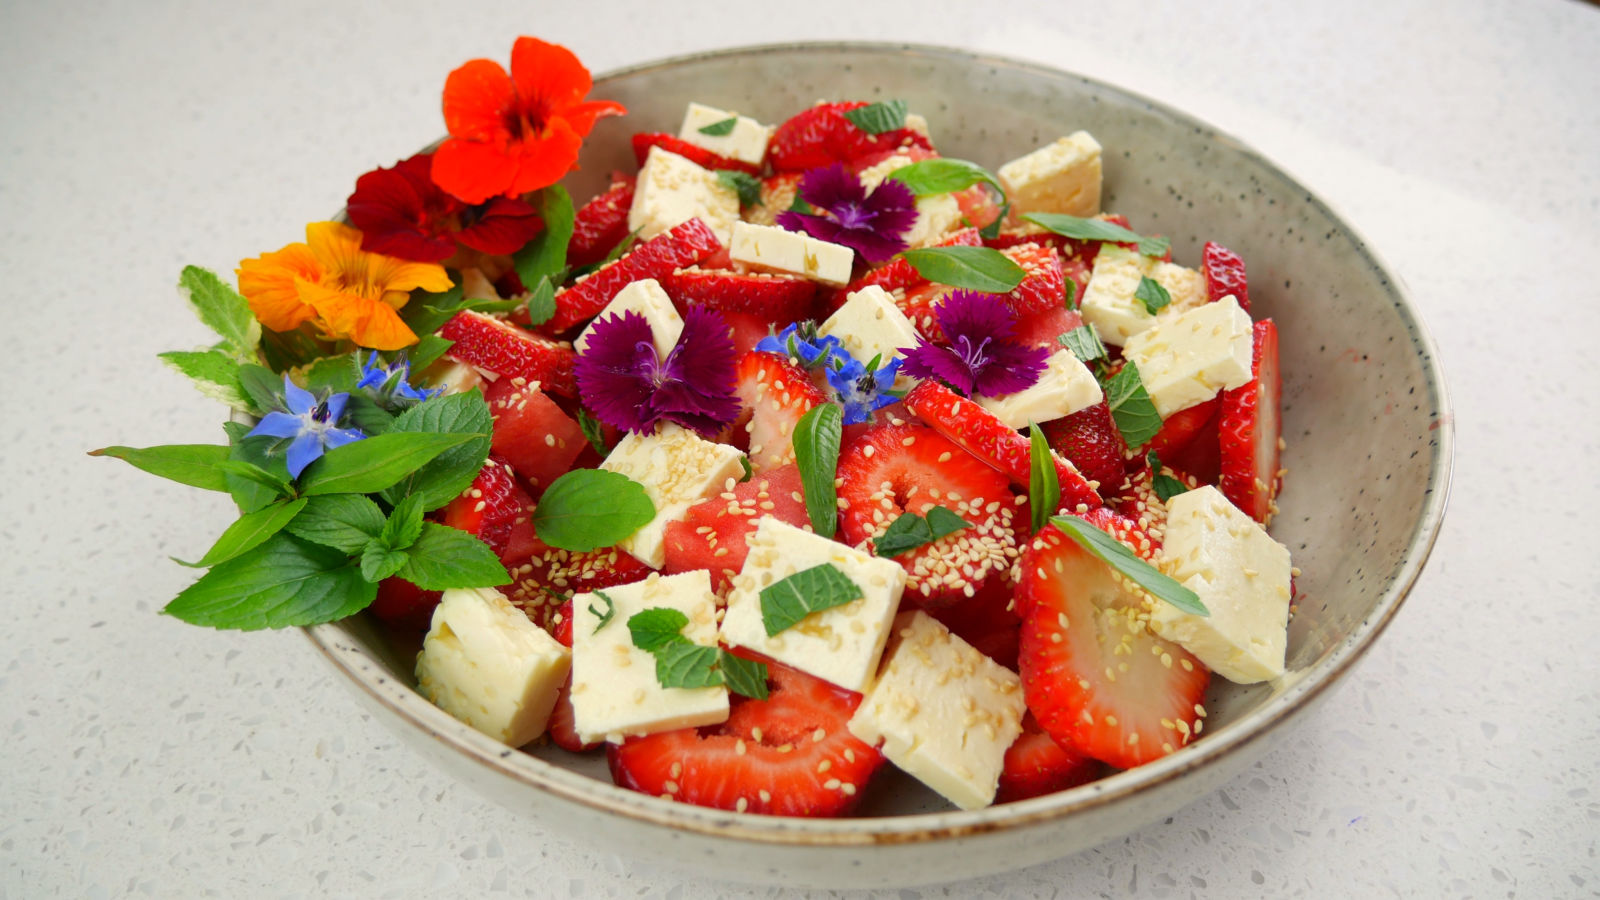 Sweet & Salty Watermelon Salad (with edible flowers)